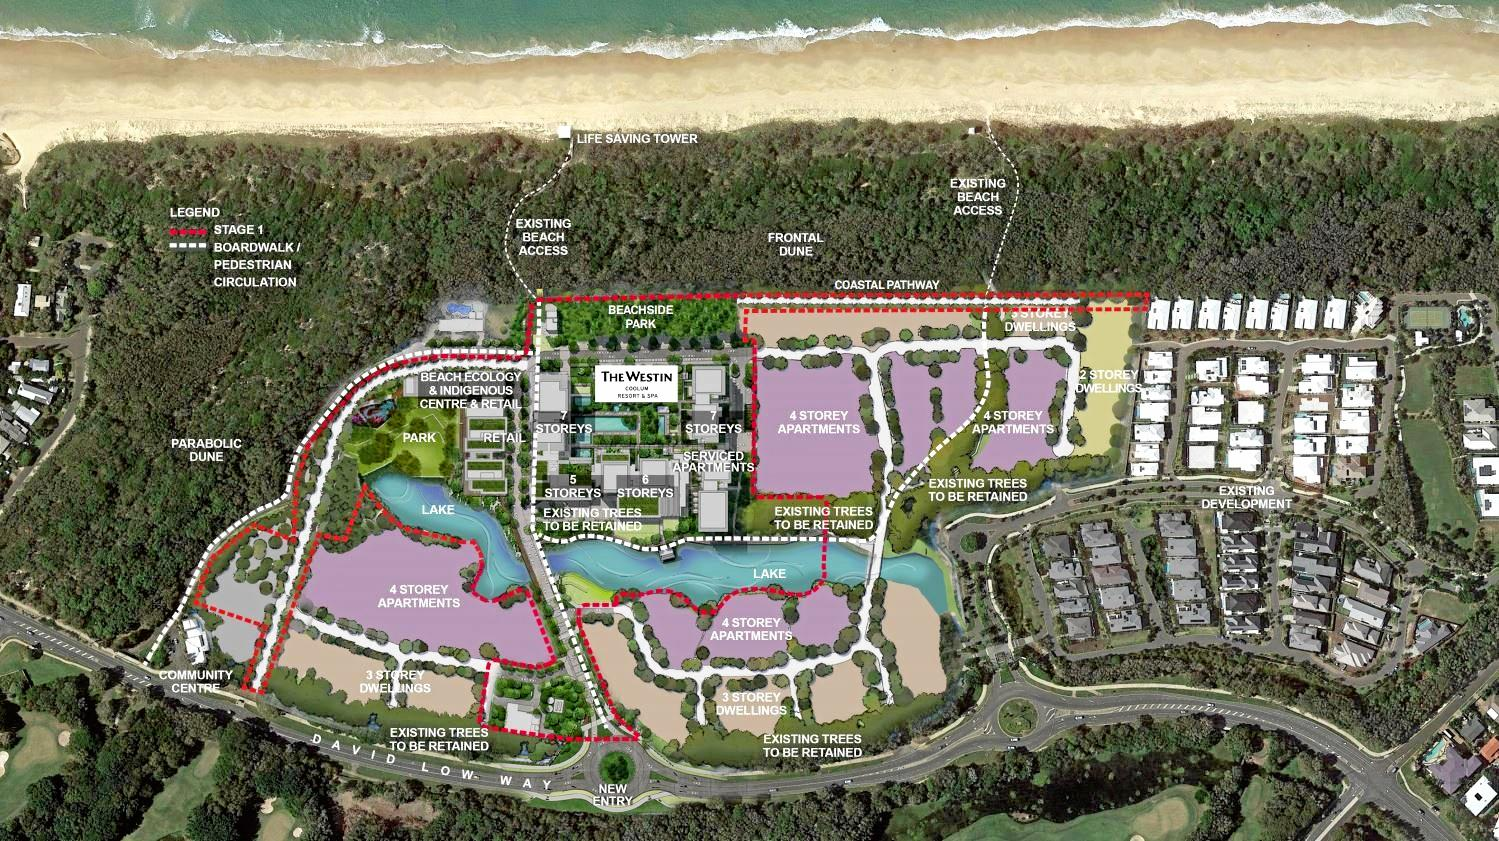 The Master Plan for the Sekisui House, Yaroomba Beach, development which attracted 9200 submissions opposing it.